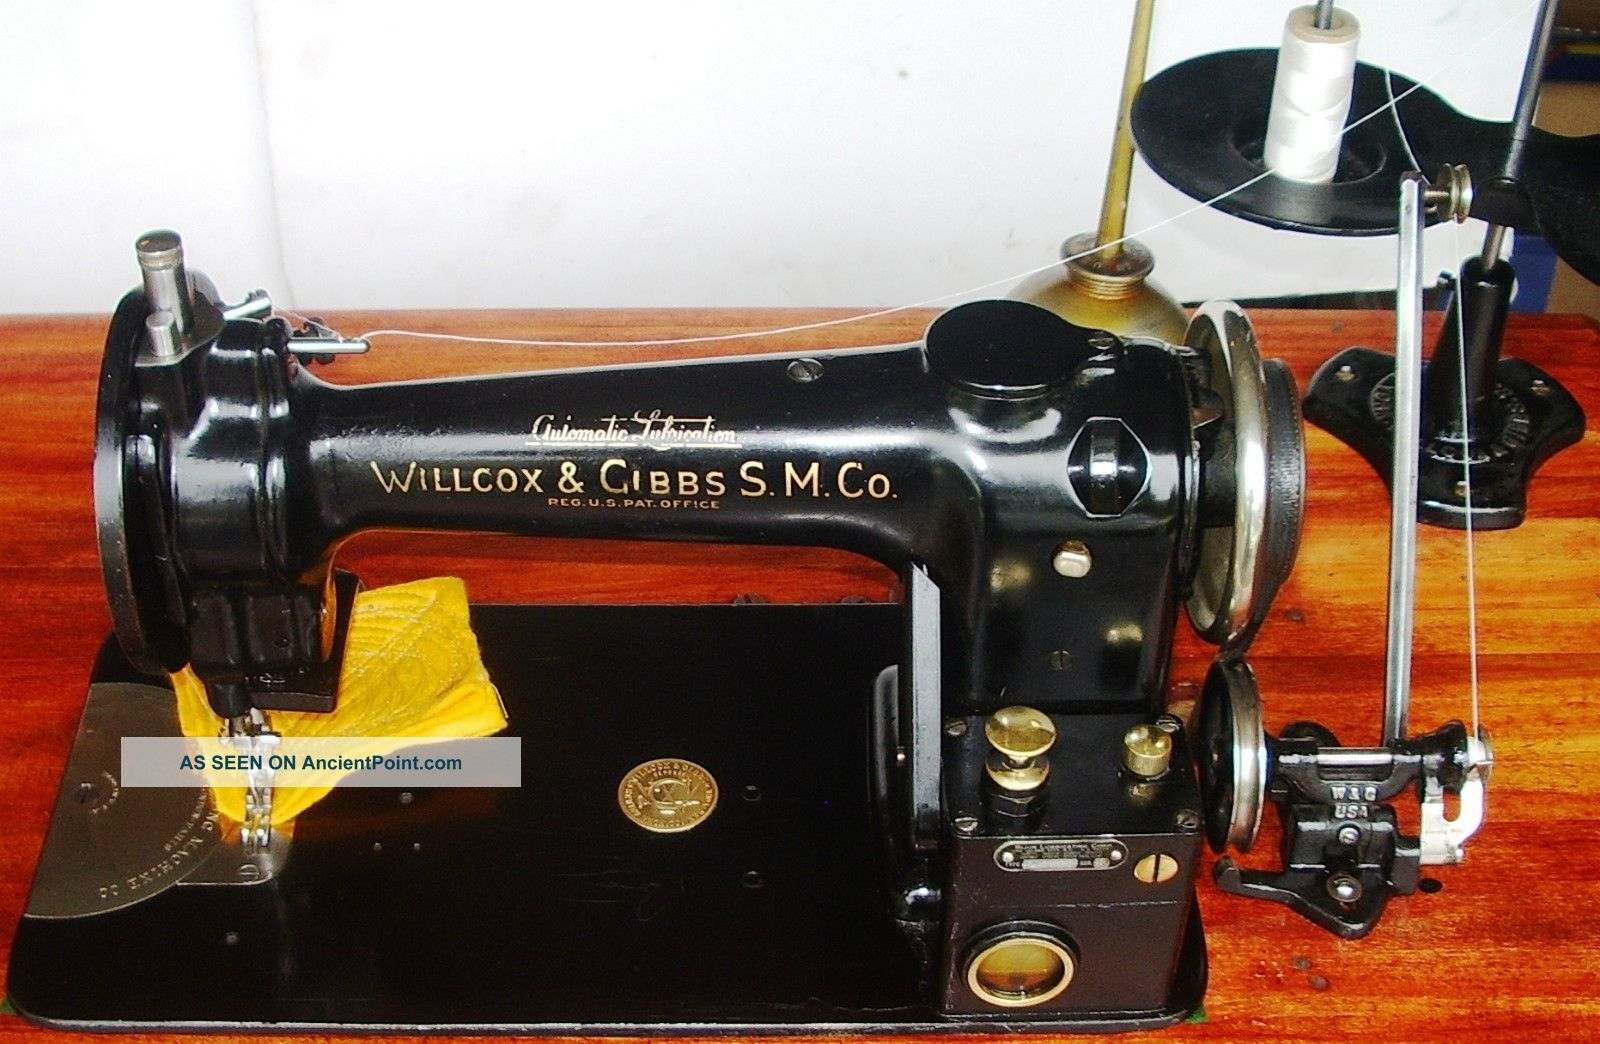 Willcox&gibbs Industrial Hi - Speed Lockstitch Type11 - A Sewing Machine Auto Lubrct Sewing Machines photo